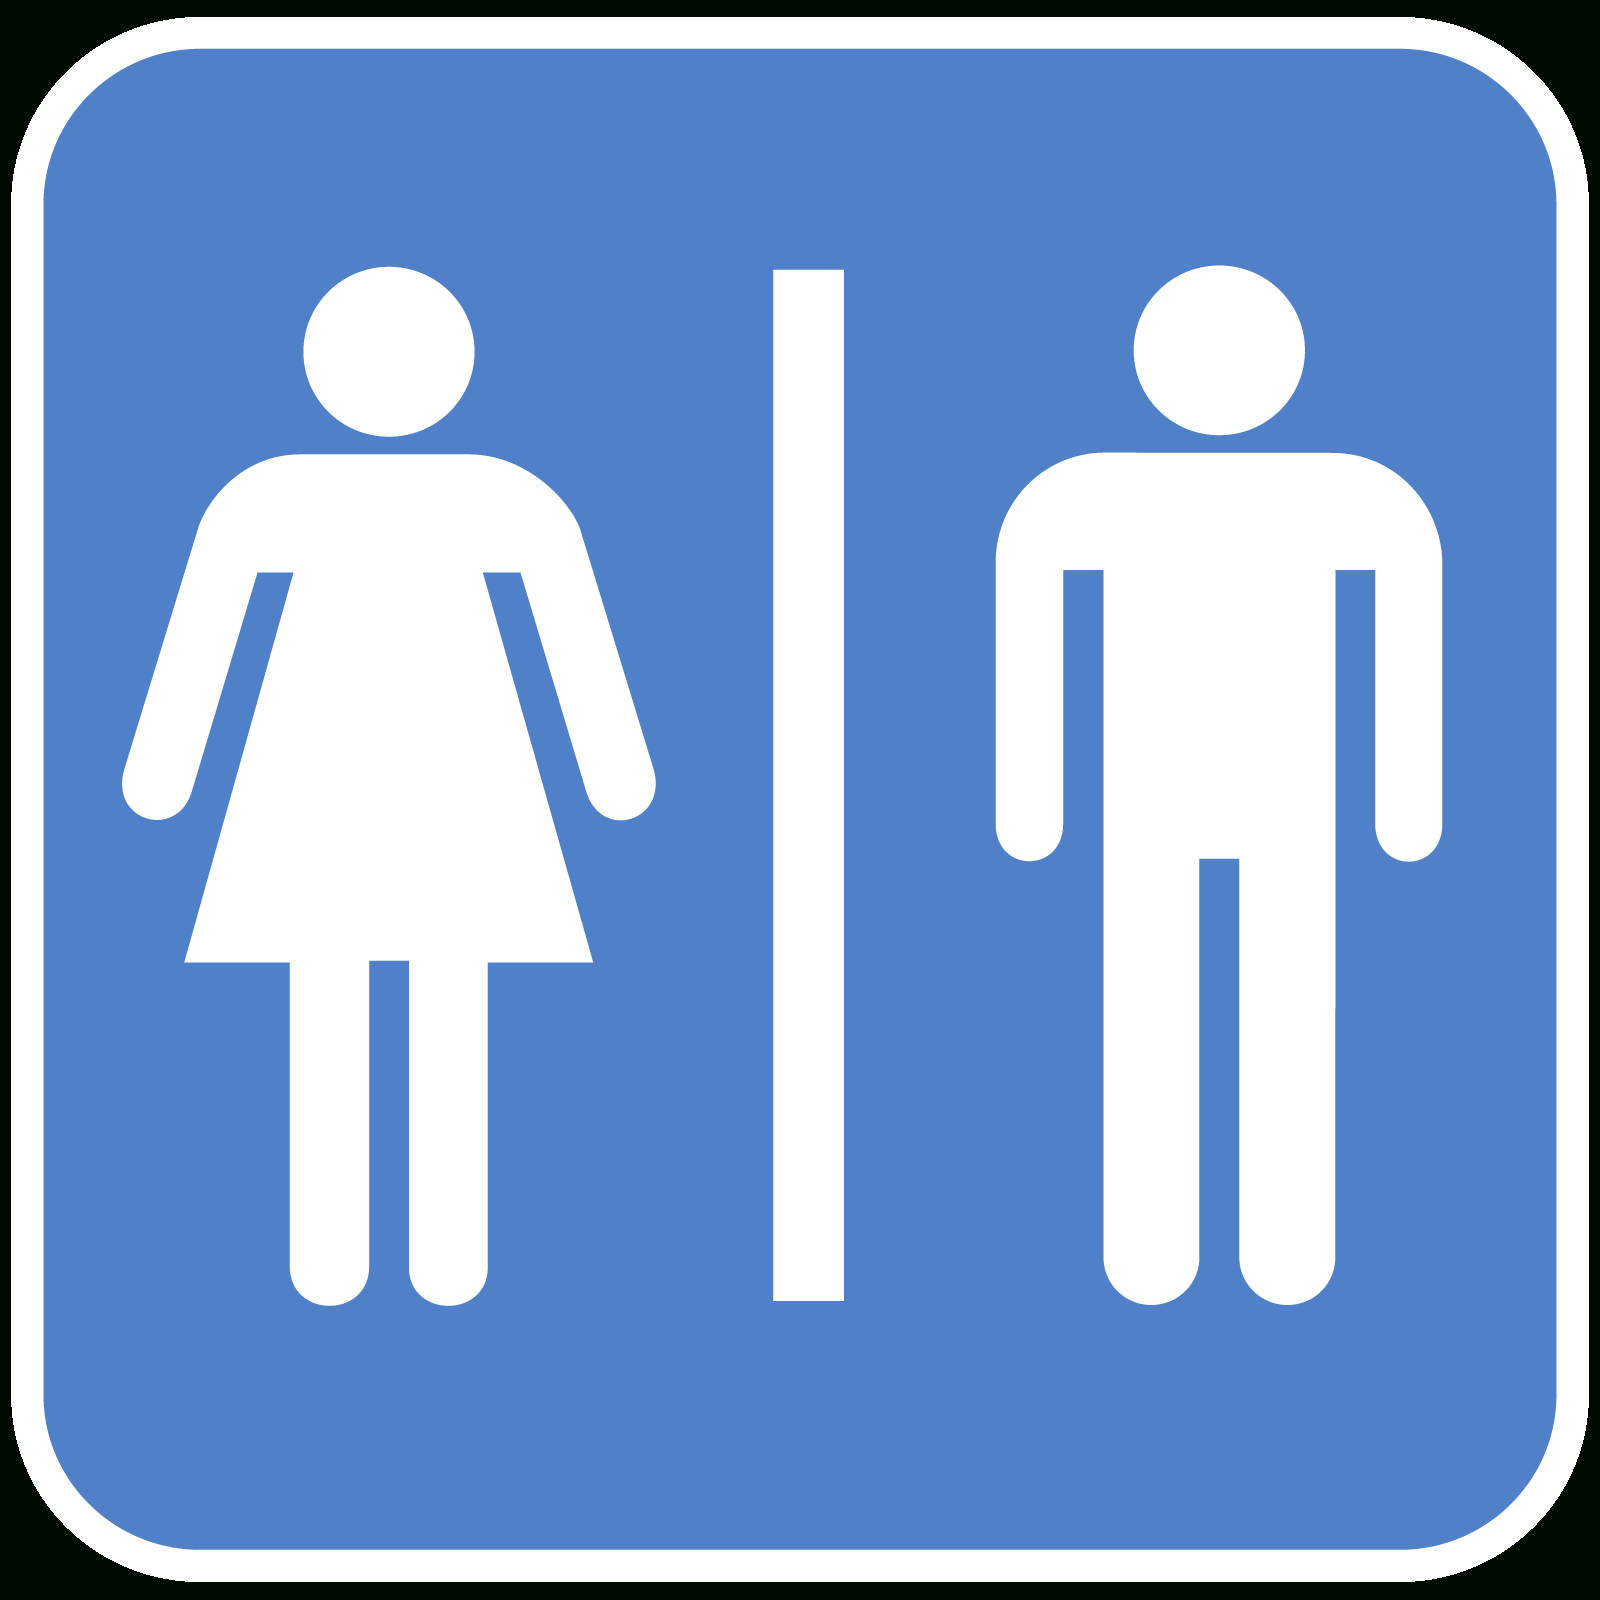 Free Free Printable Restroom Signs, Download Free Clip Art, Free - Free Printable No Restroom Signs